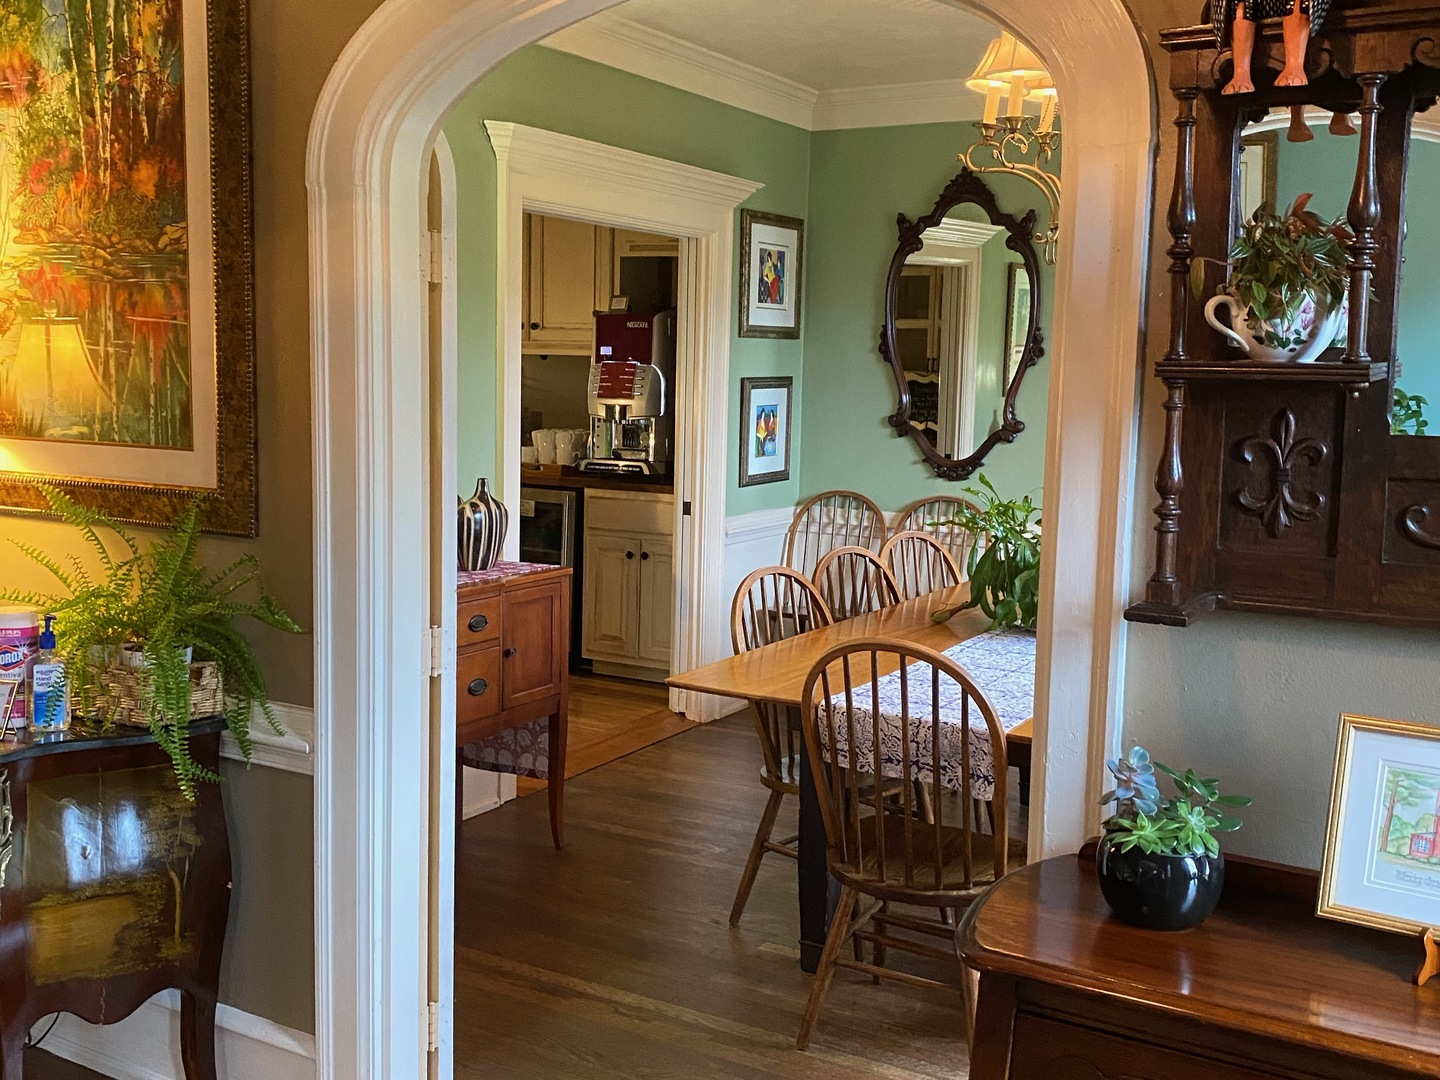 A living room filled with furniture and a large window at Williamsburg Manor Bed & Breakfast.